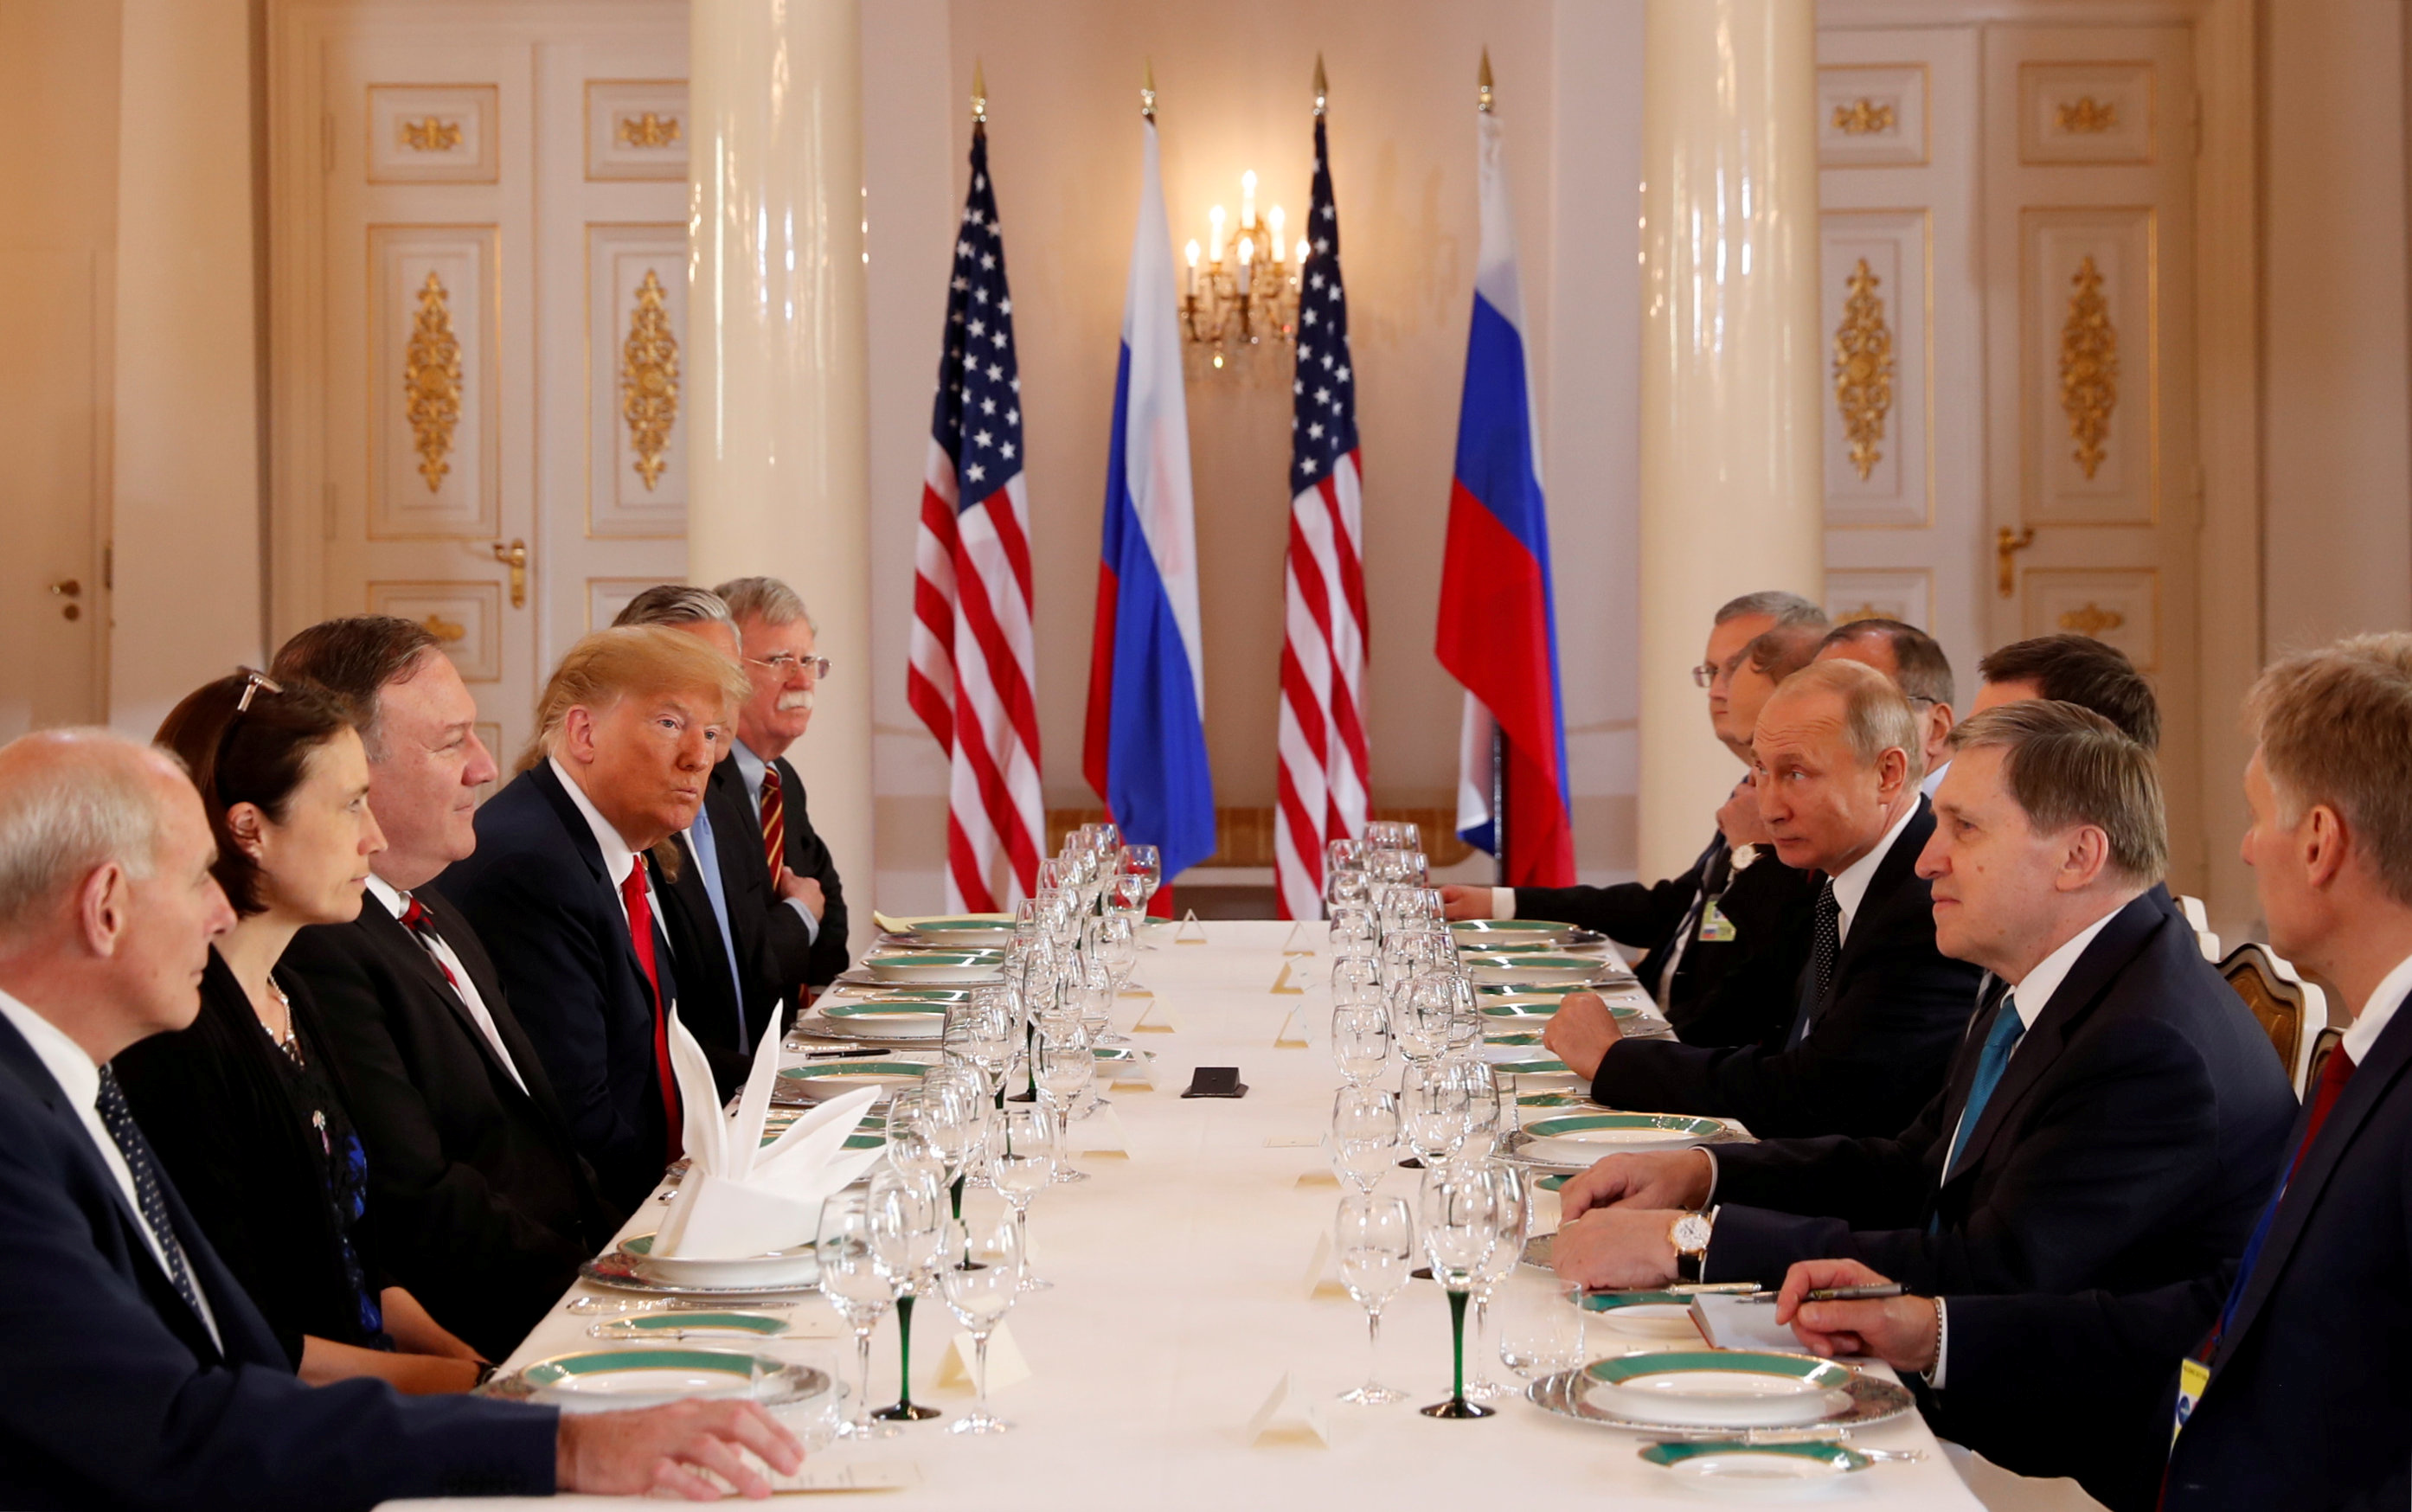 U.S. President Donald Trump participates in an expanded bilateral meeting with Russia's President Vladimir Putin in Helsinki, Finland, July 16, 2018. REUTERS/Kevin Lamarque     TPX IMAGES OF THE DAY - RC1497F0B200